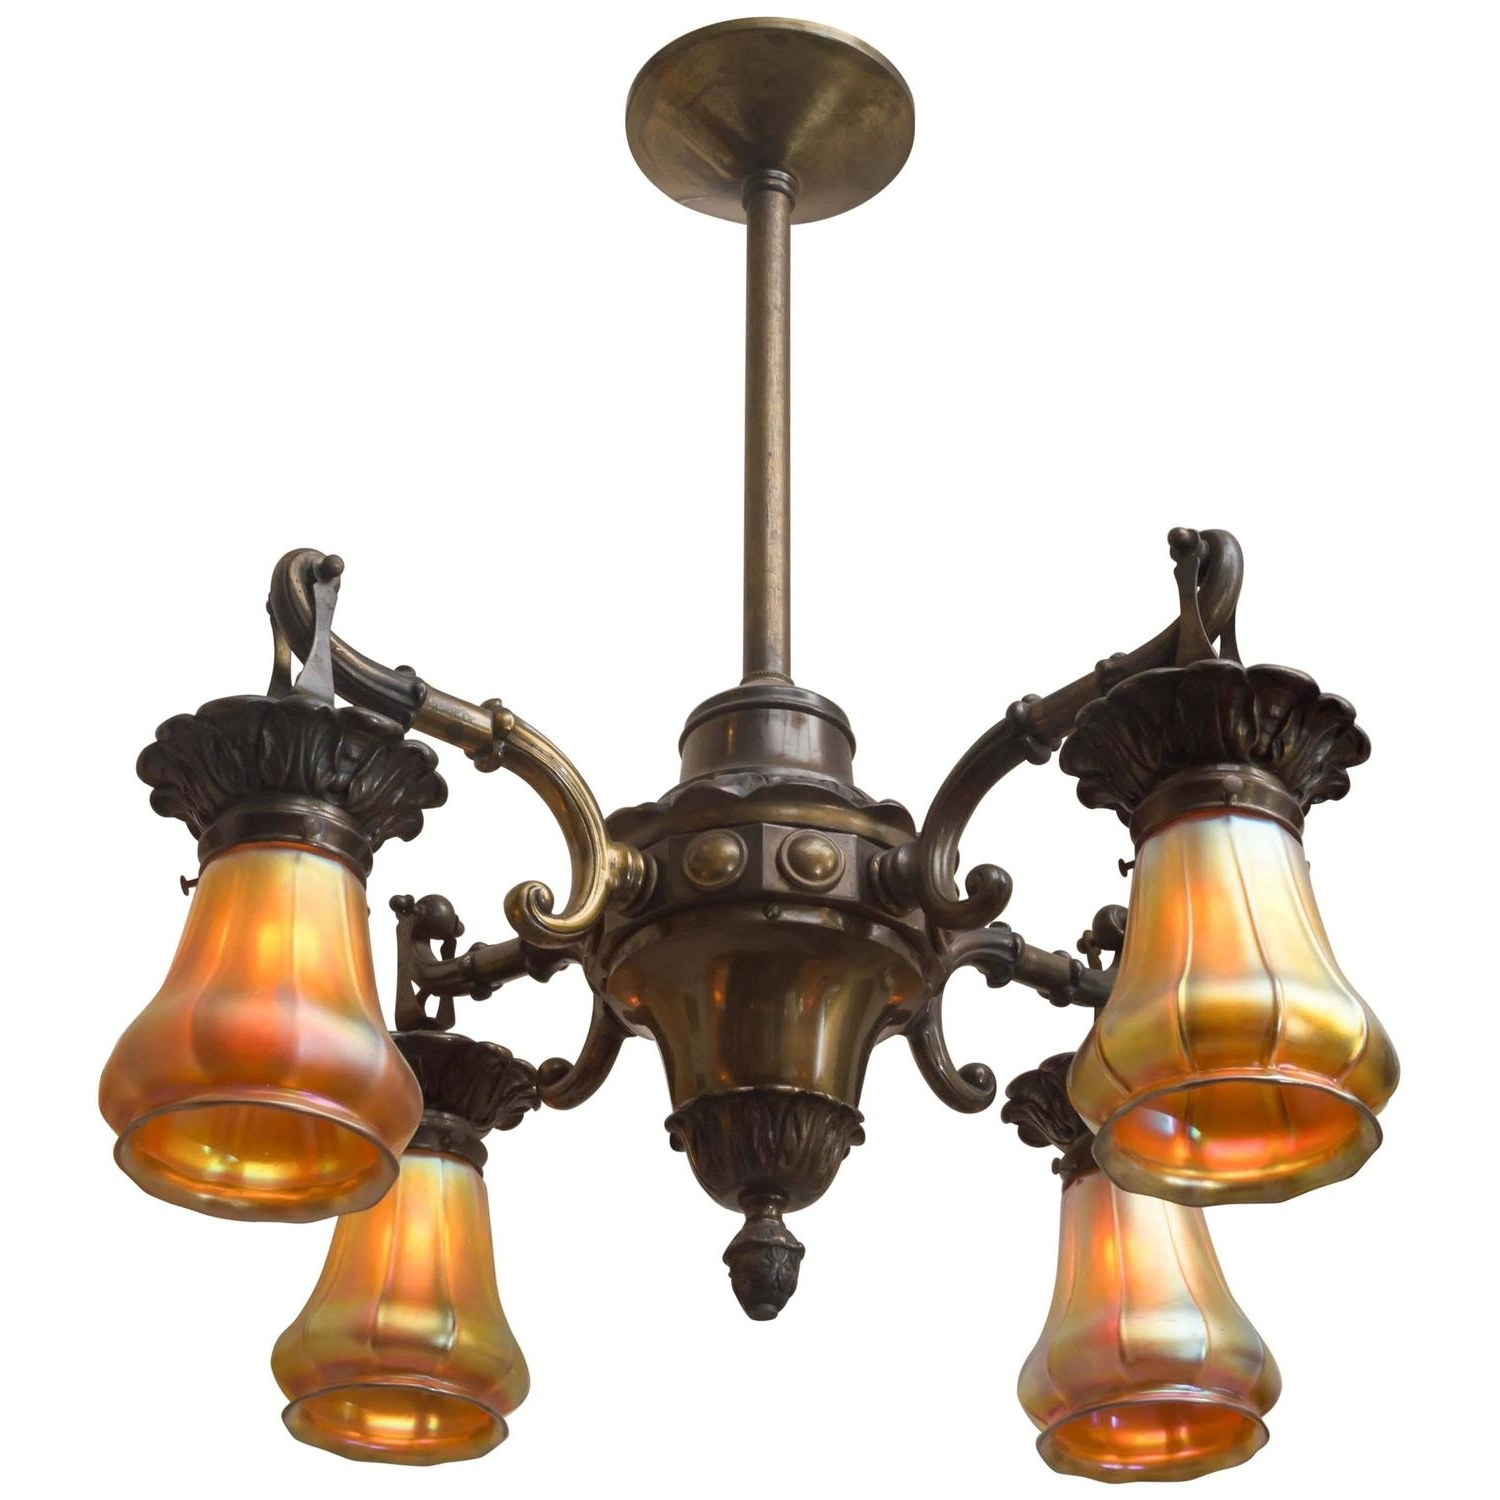 Most Current Edwardian Chandeliers Pertaining To Edwardian Chandeliers And Pendants – 26 For Sale At 1Stdibs (View 18 of 20)